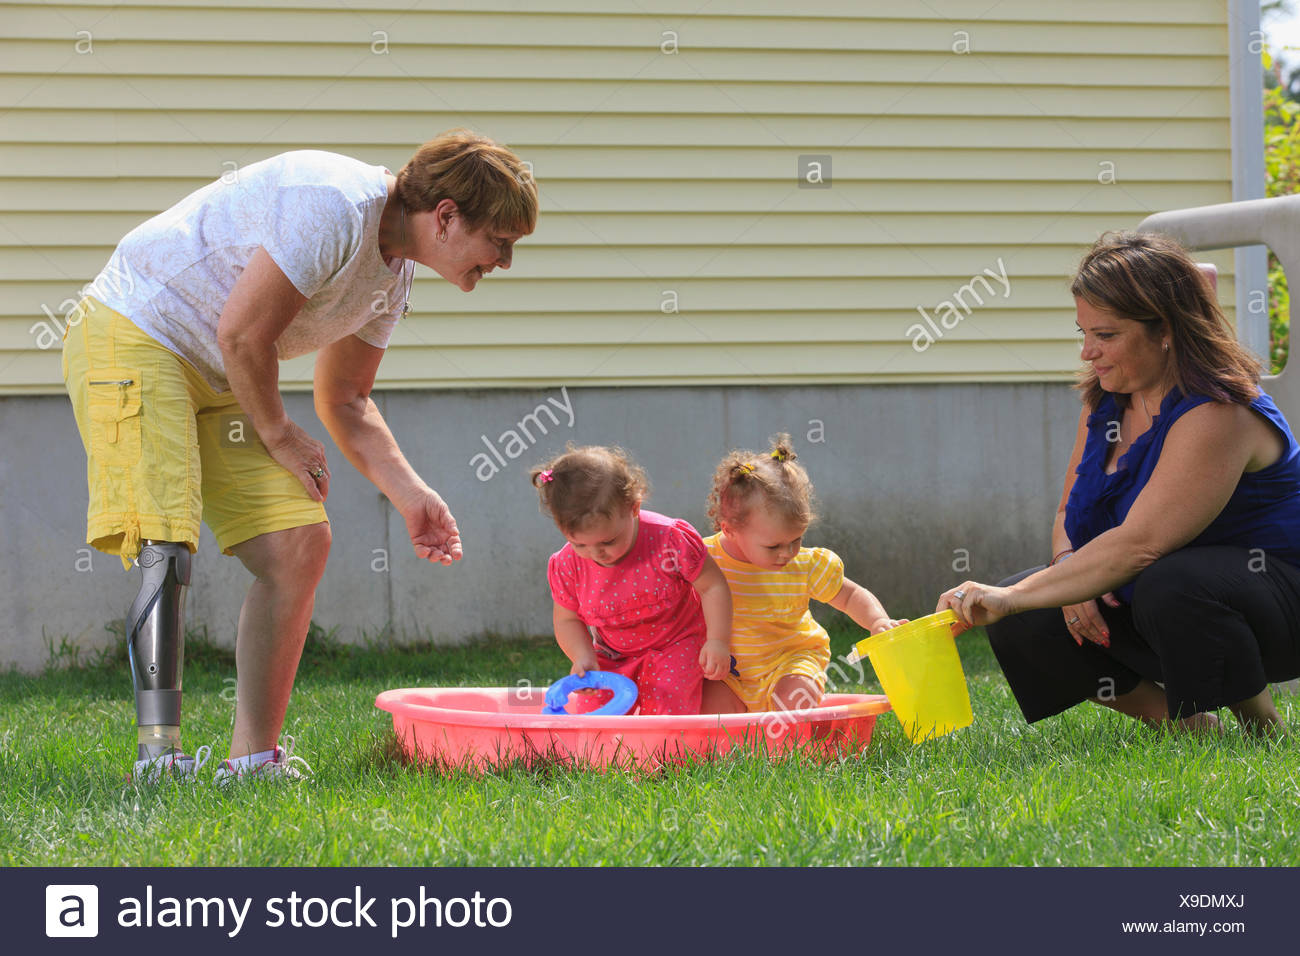 Grandmother with a prosthetic leg playing with her grandchildren on a child's pool - Stock Image